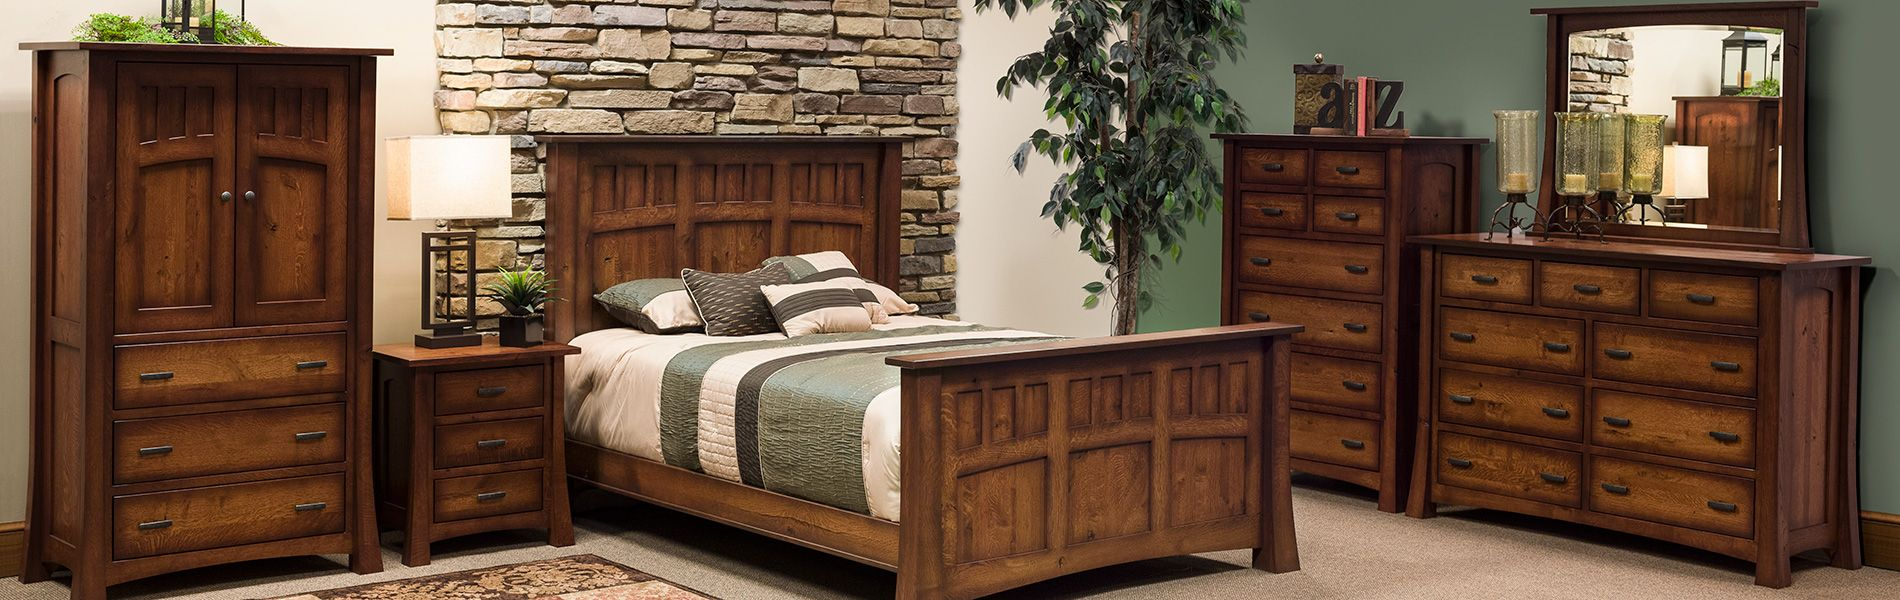 amish bedroom furniture deutsch furniture haus rh deutschfurniturehaus com amish bedroom furniture ontario amish bedroom furniture sets